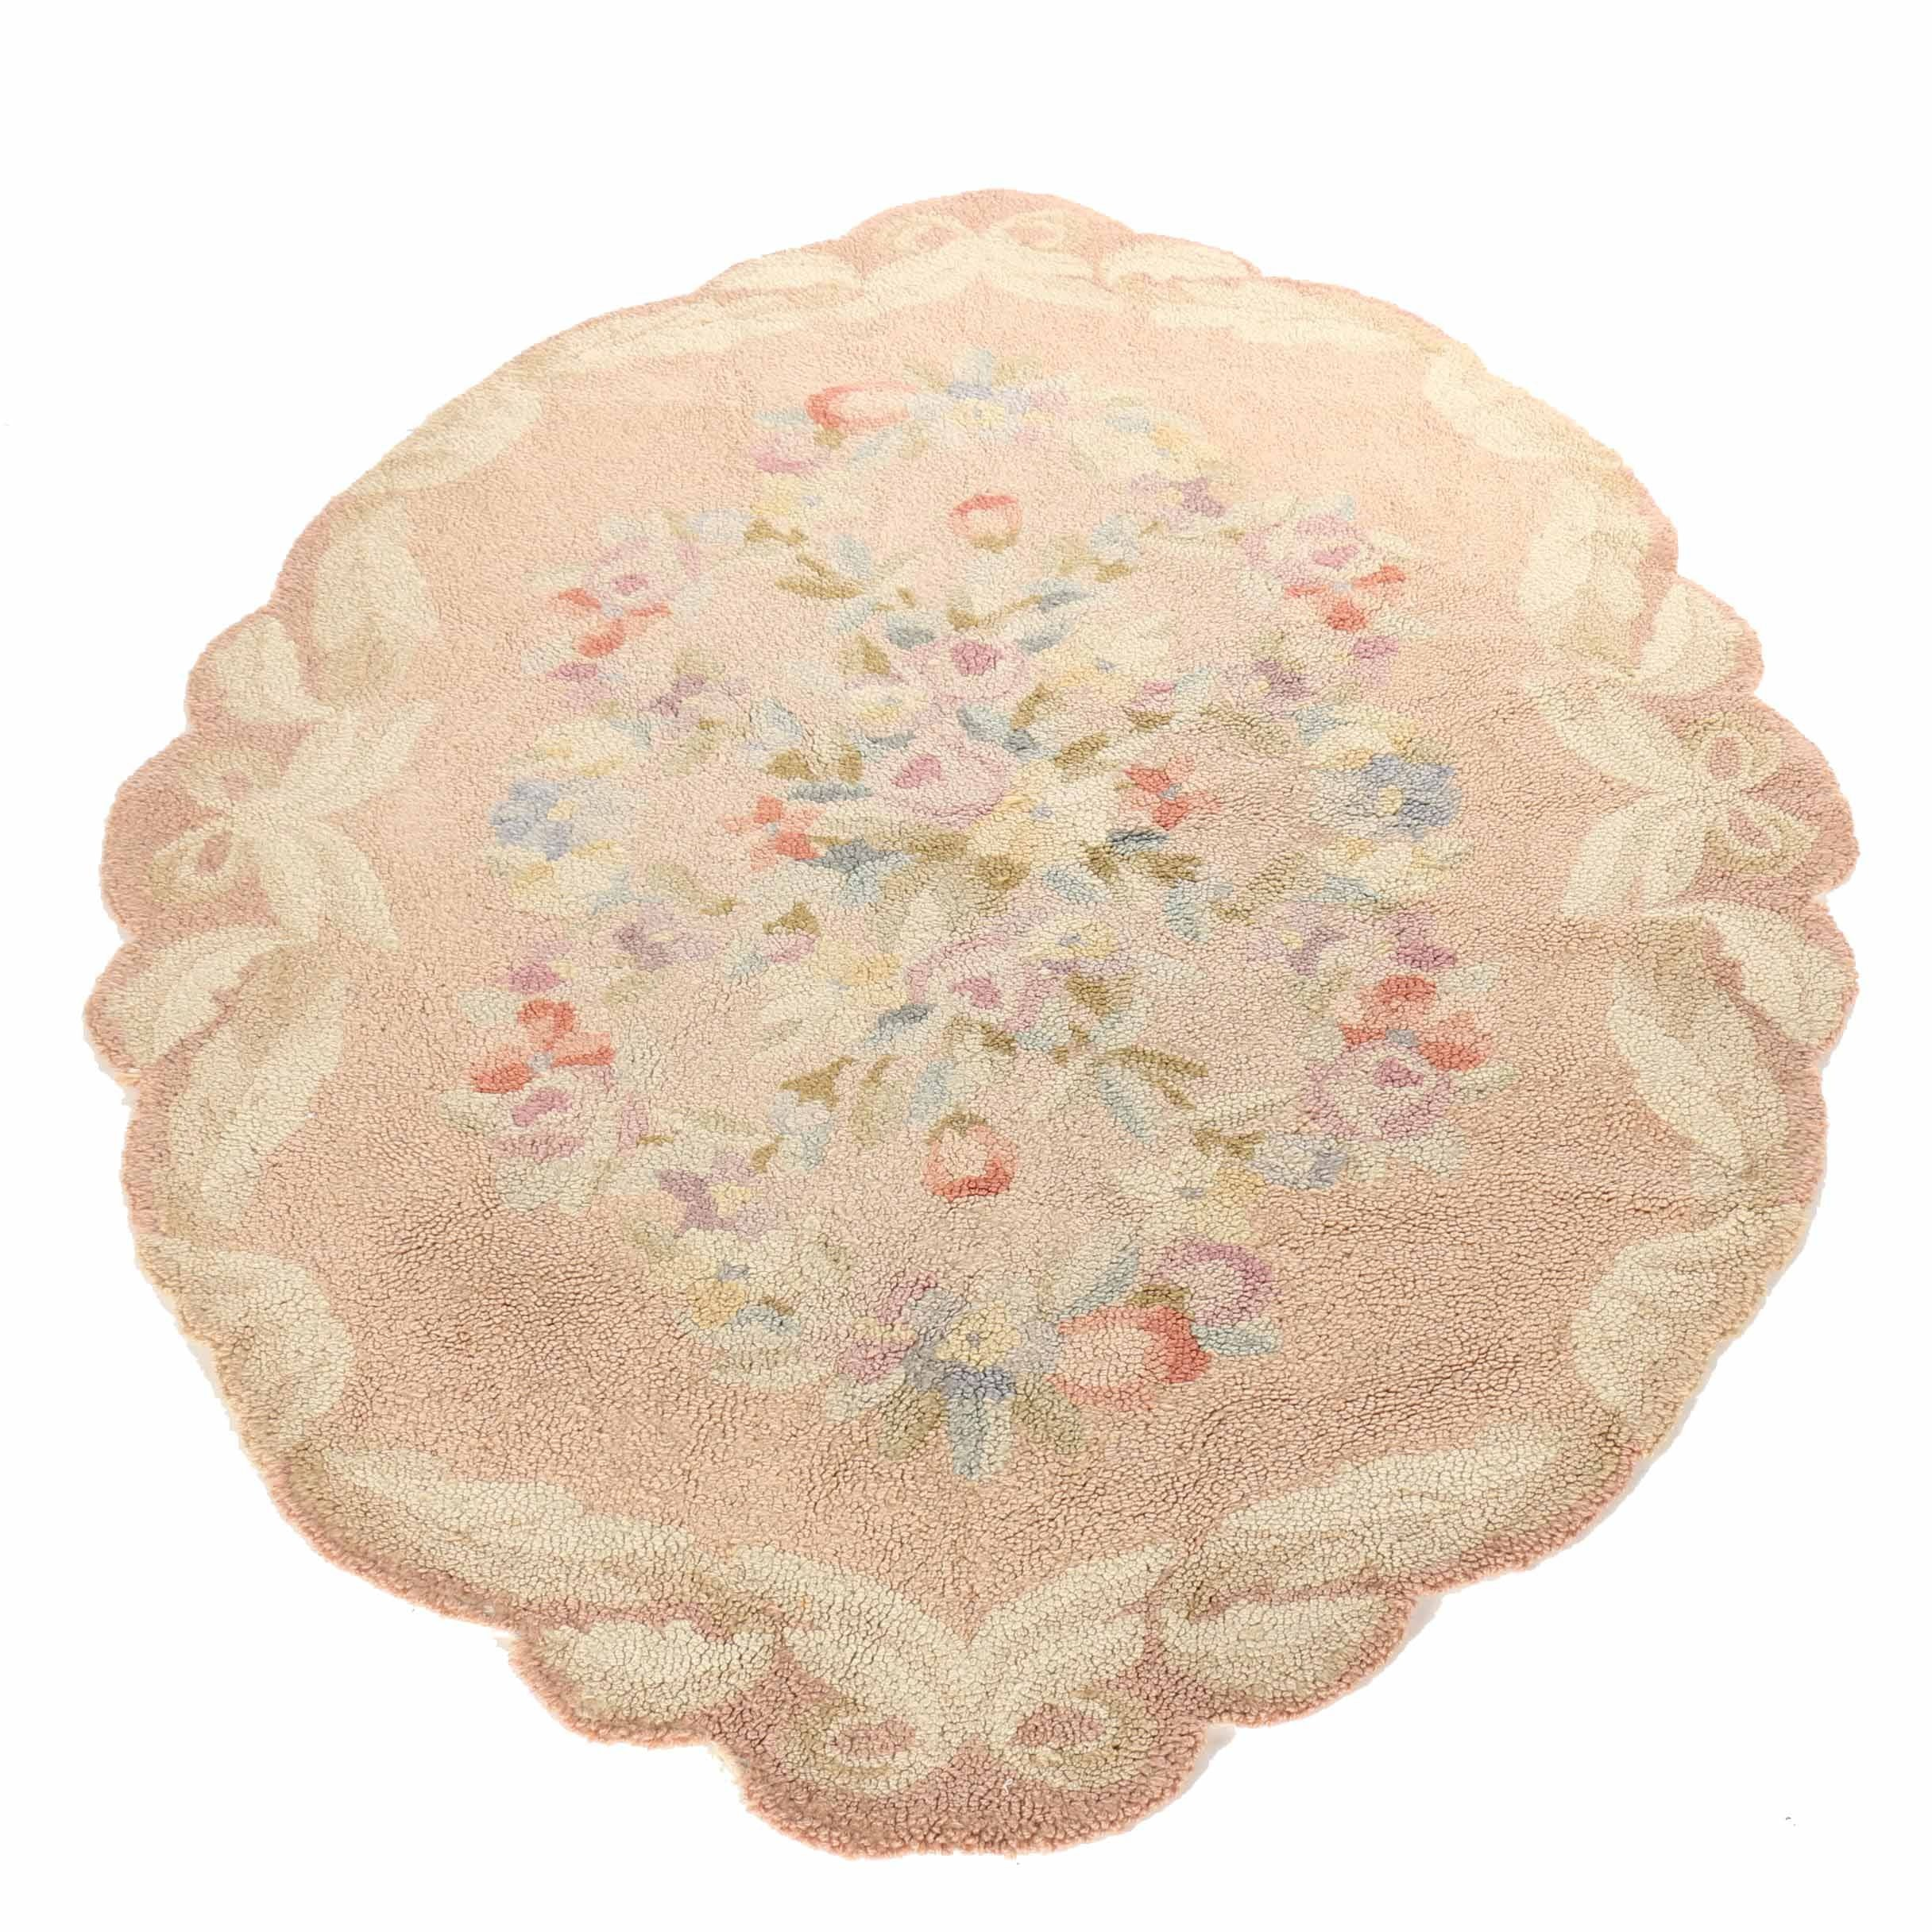 Oval Dusty Rose Hooked Floral Rug